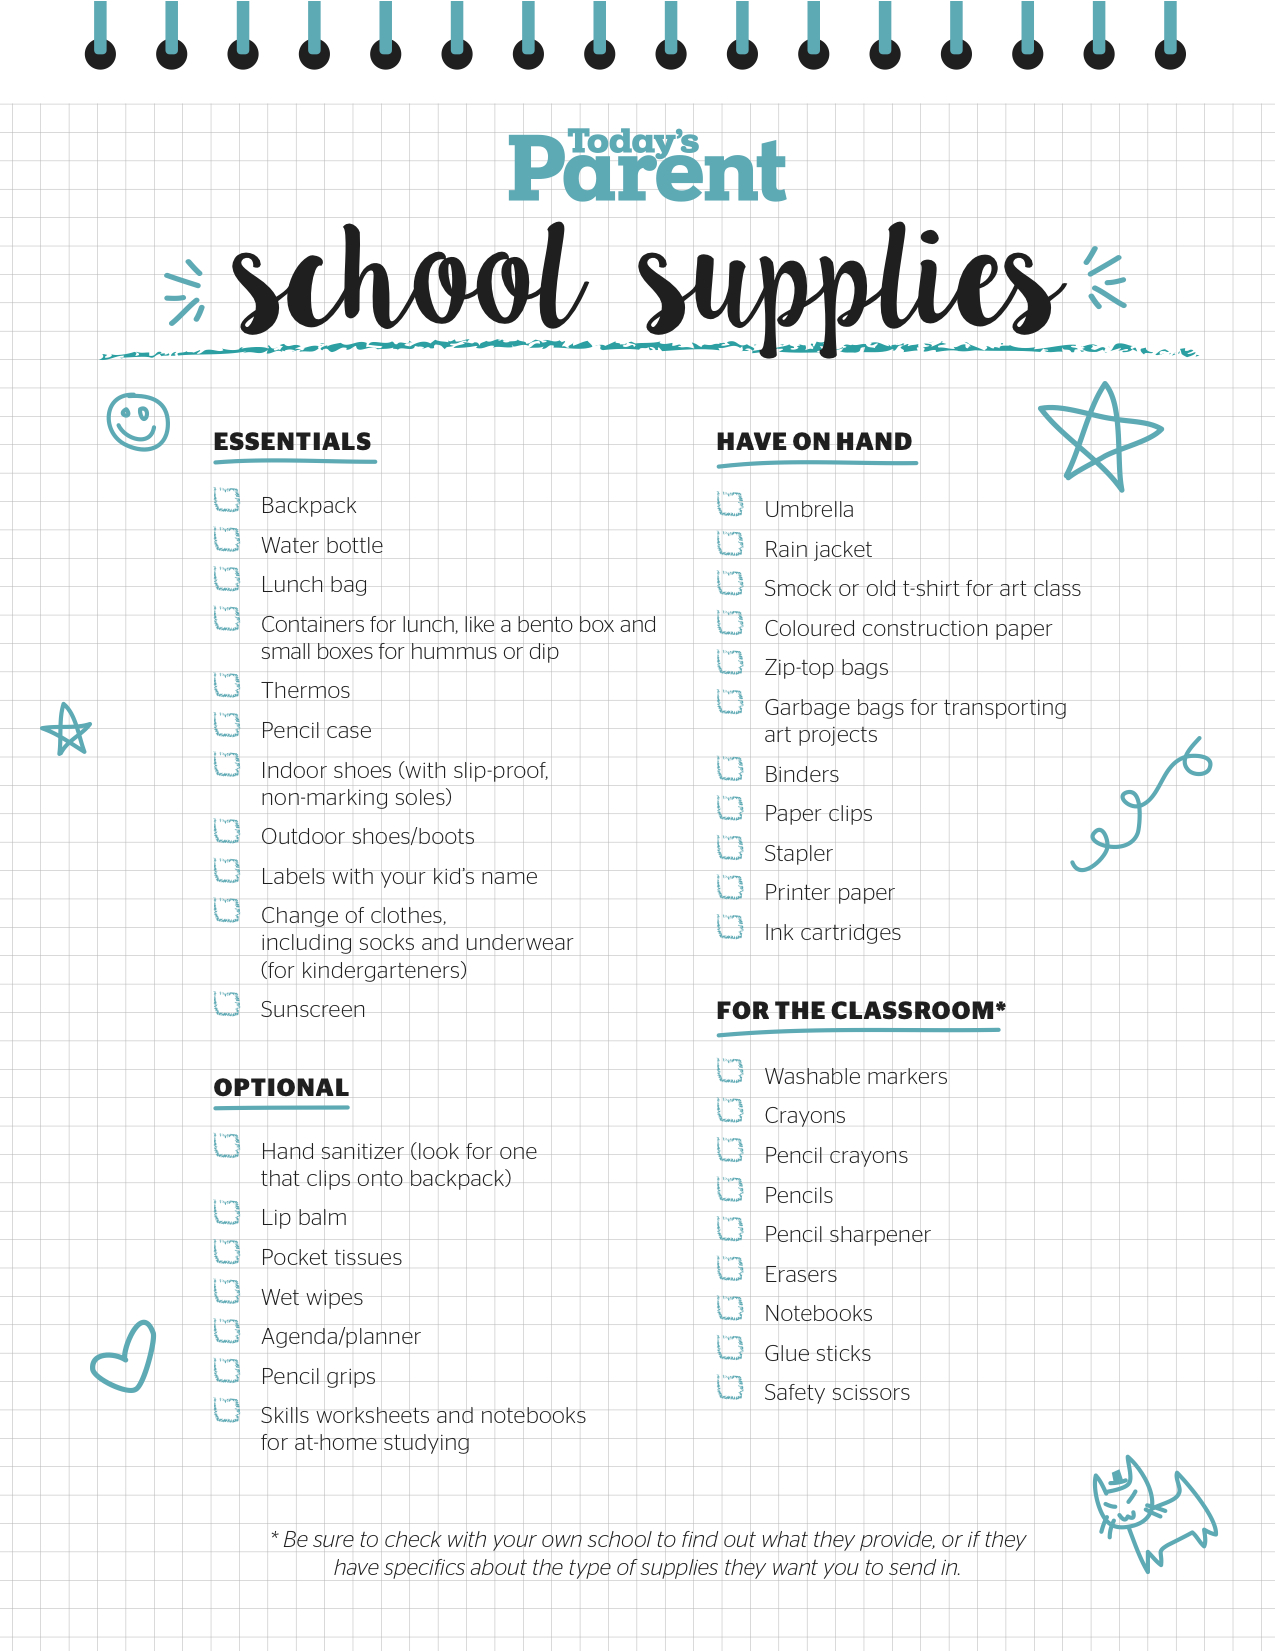 Printable School Supplies Checklist